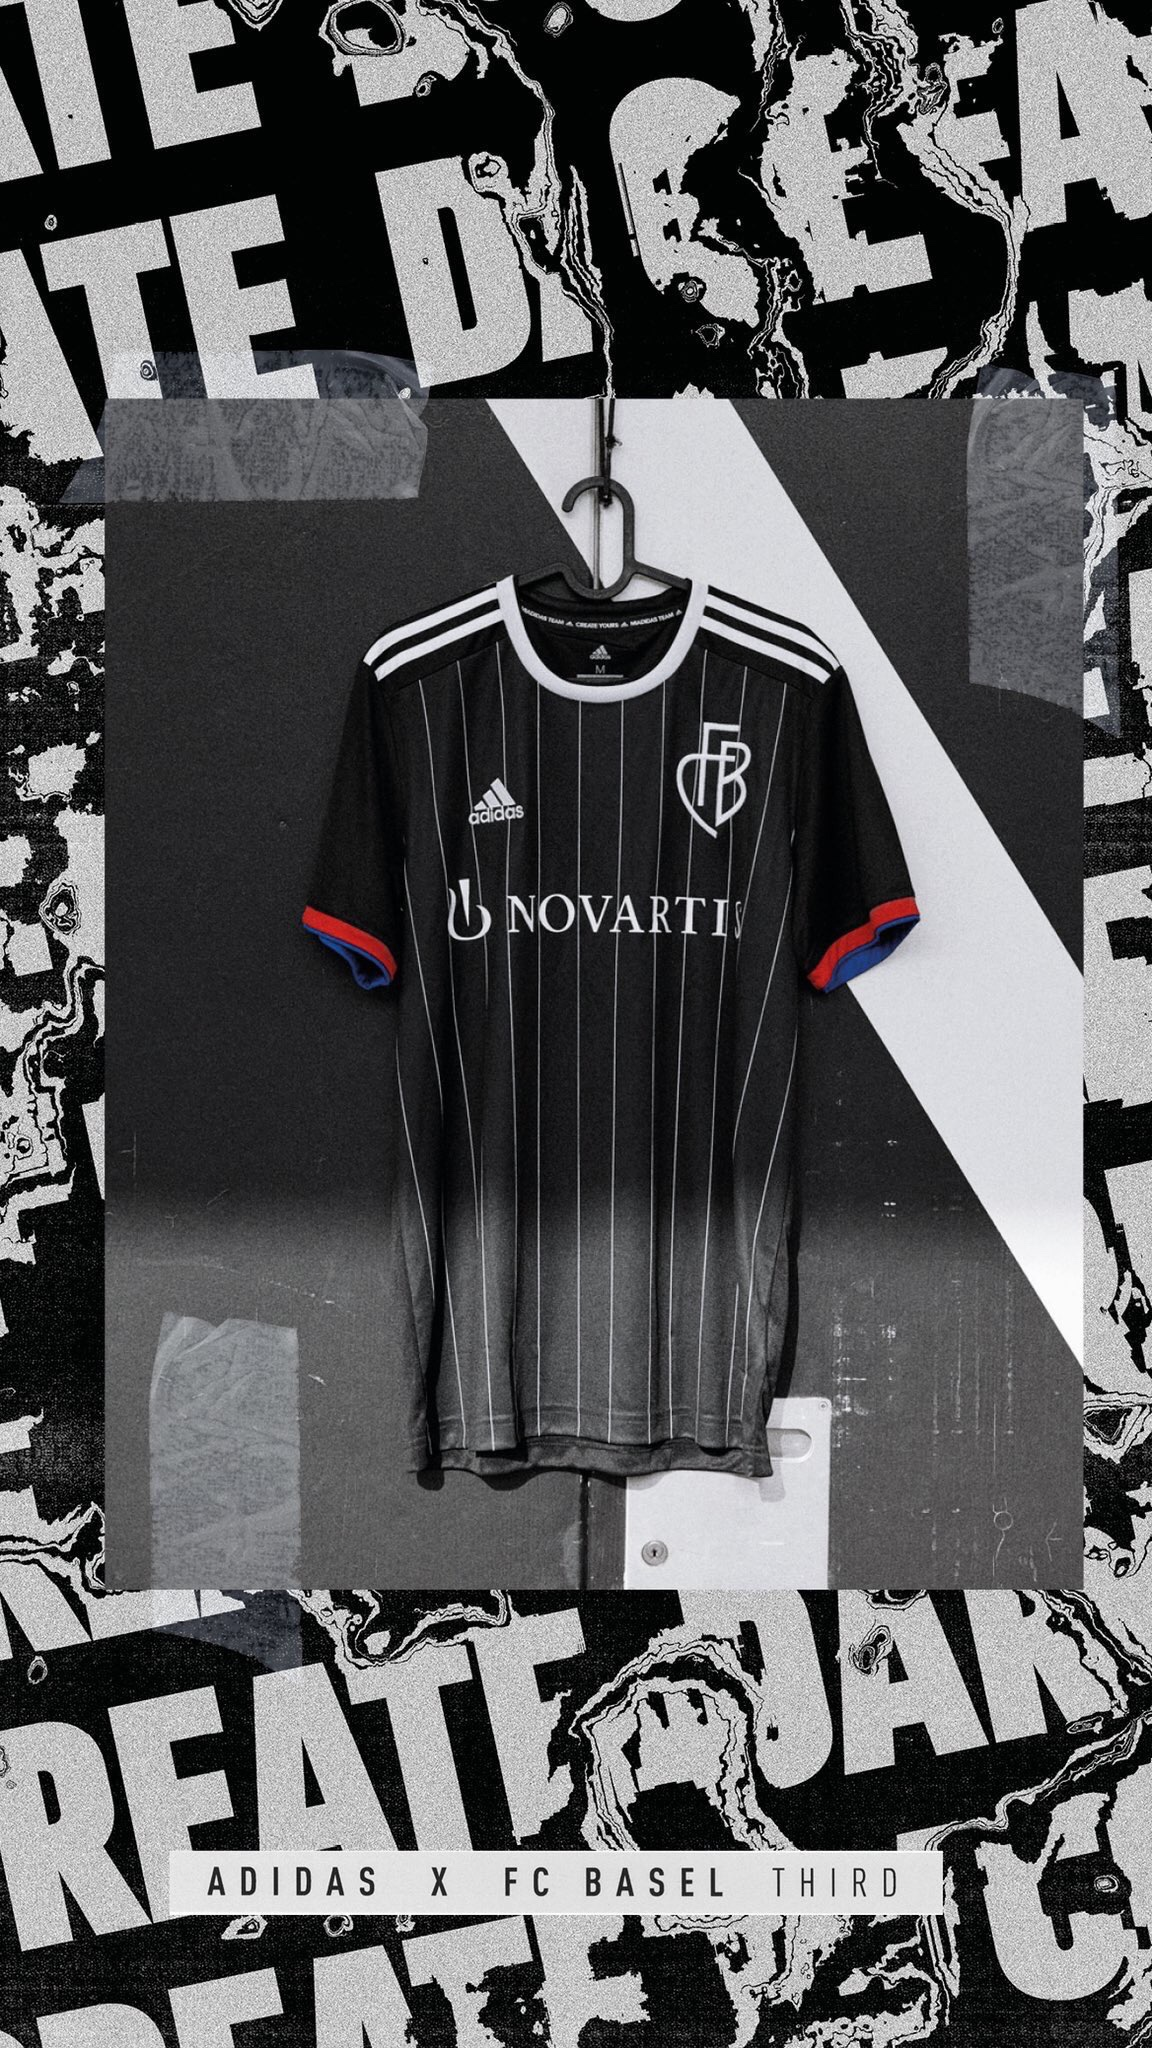 Adidas FC Basel 1893 Third Kit 2019-20 Released